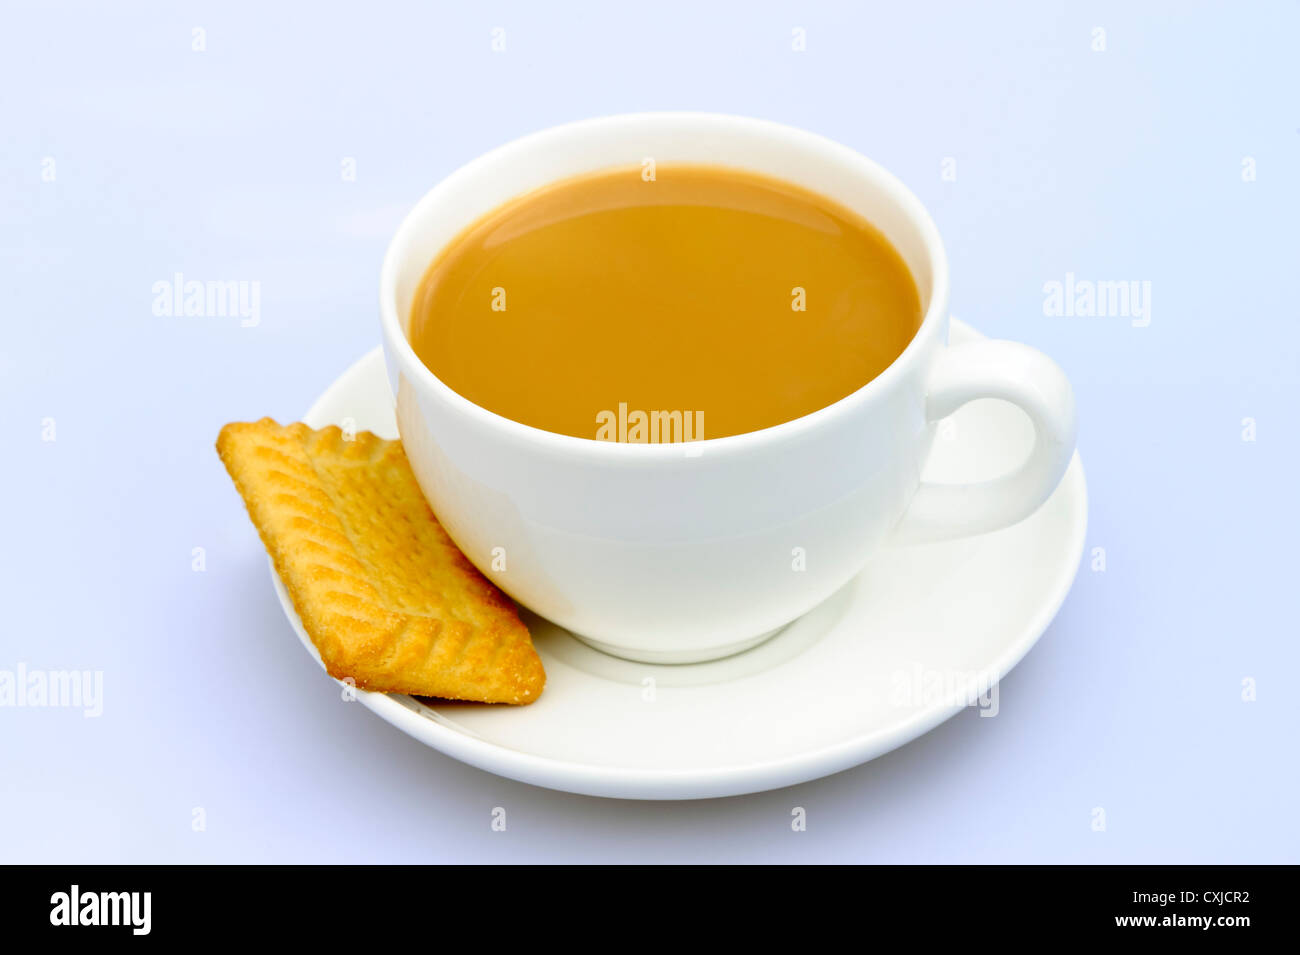 Cup of tea in a plain white cup & saucer. Tea and biscuit, UK. - Stock Image